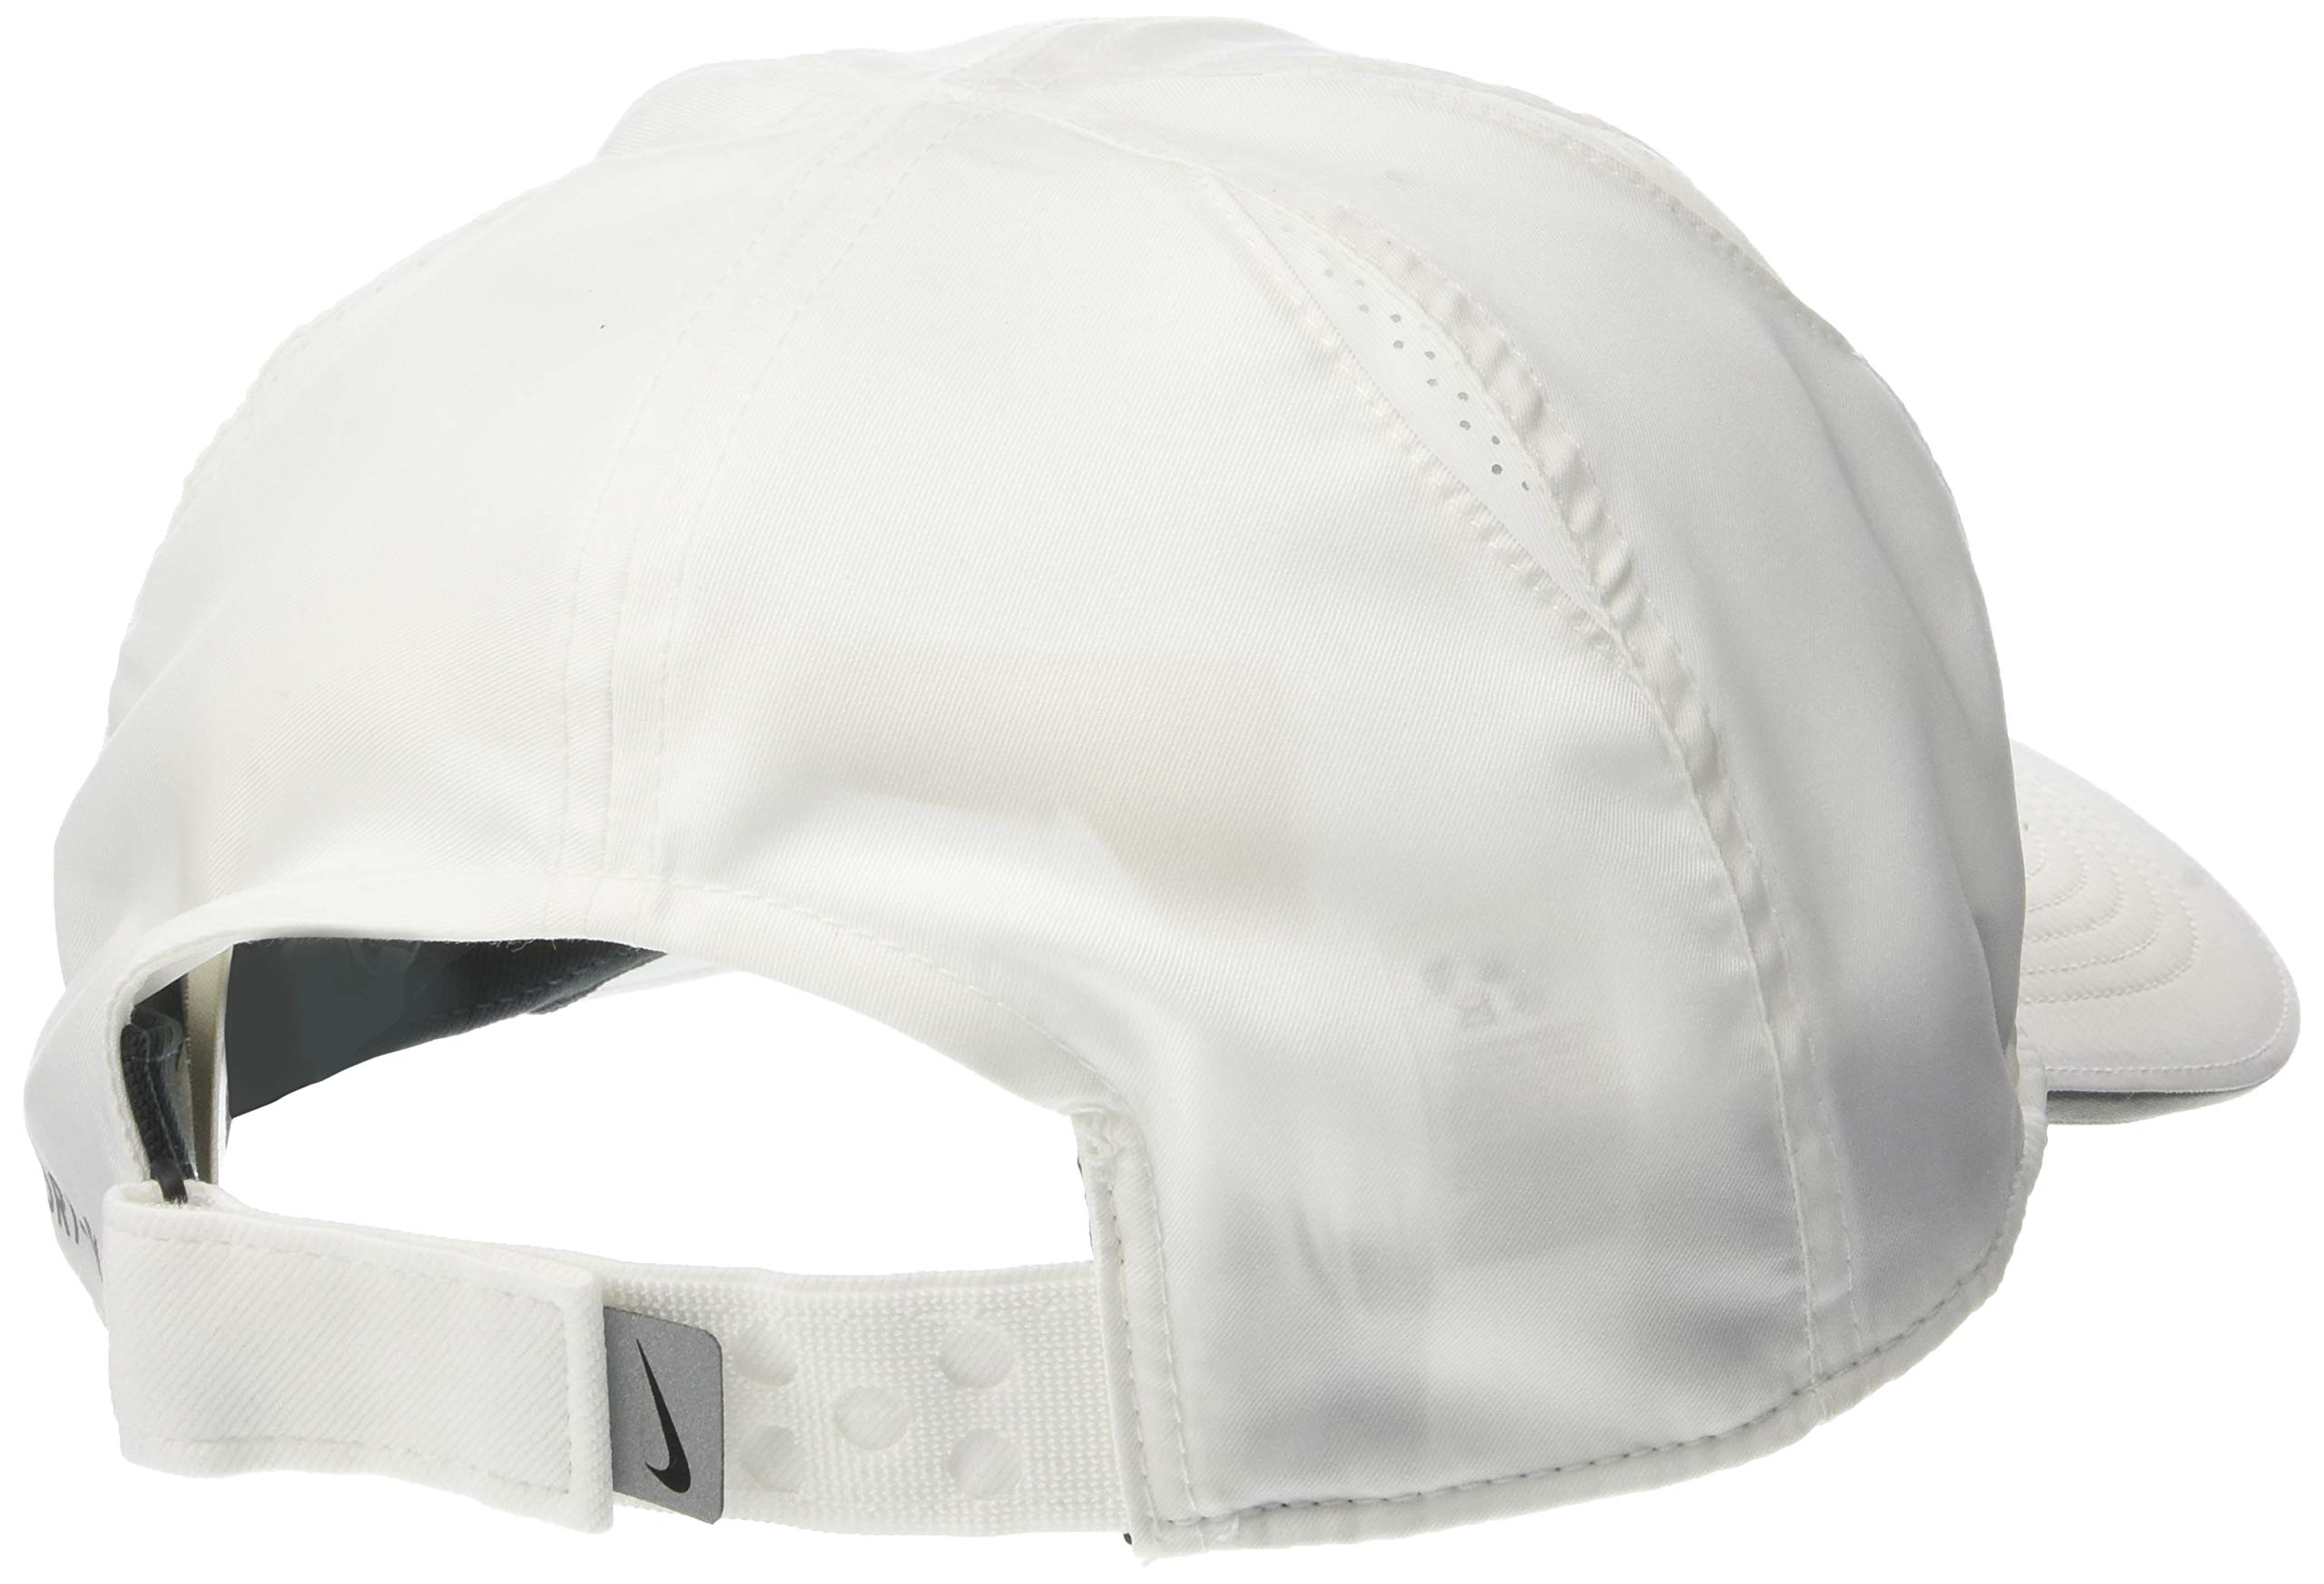 Nike Featherlight Running Cap, White, Misc by Nike (Image #2)